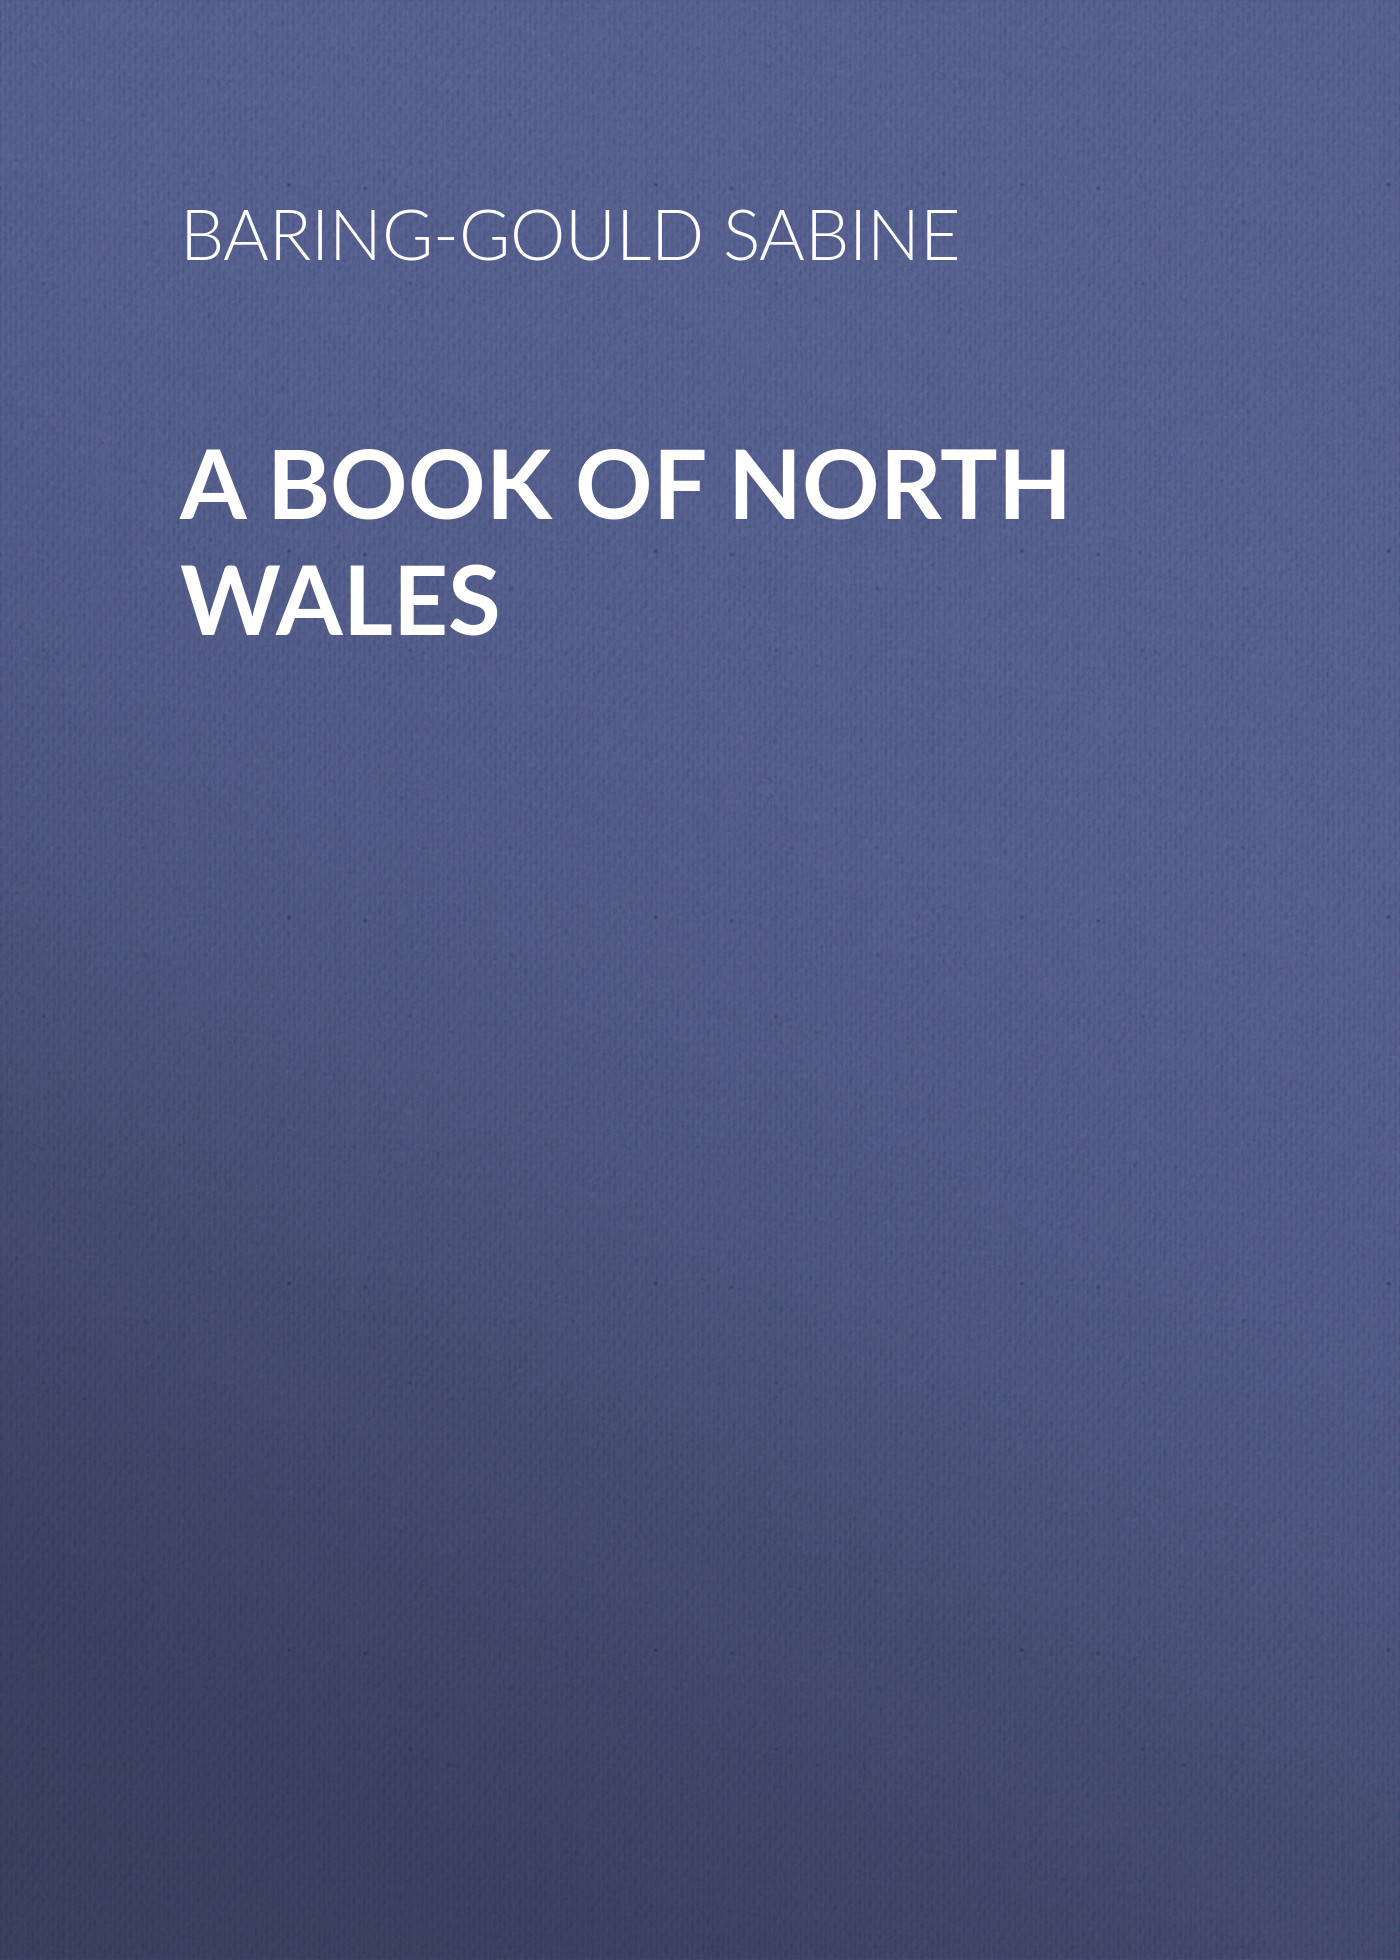 Baring-Gould Sabine A Book of North Wales baring gould sabine a book of ghosts